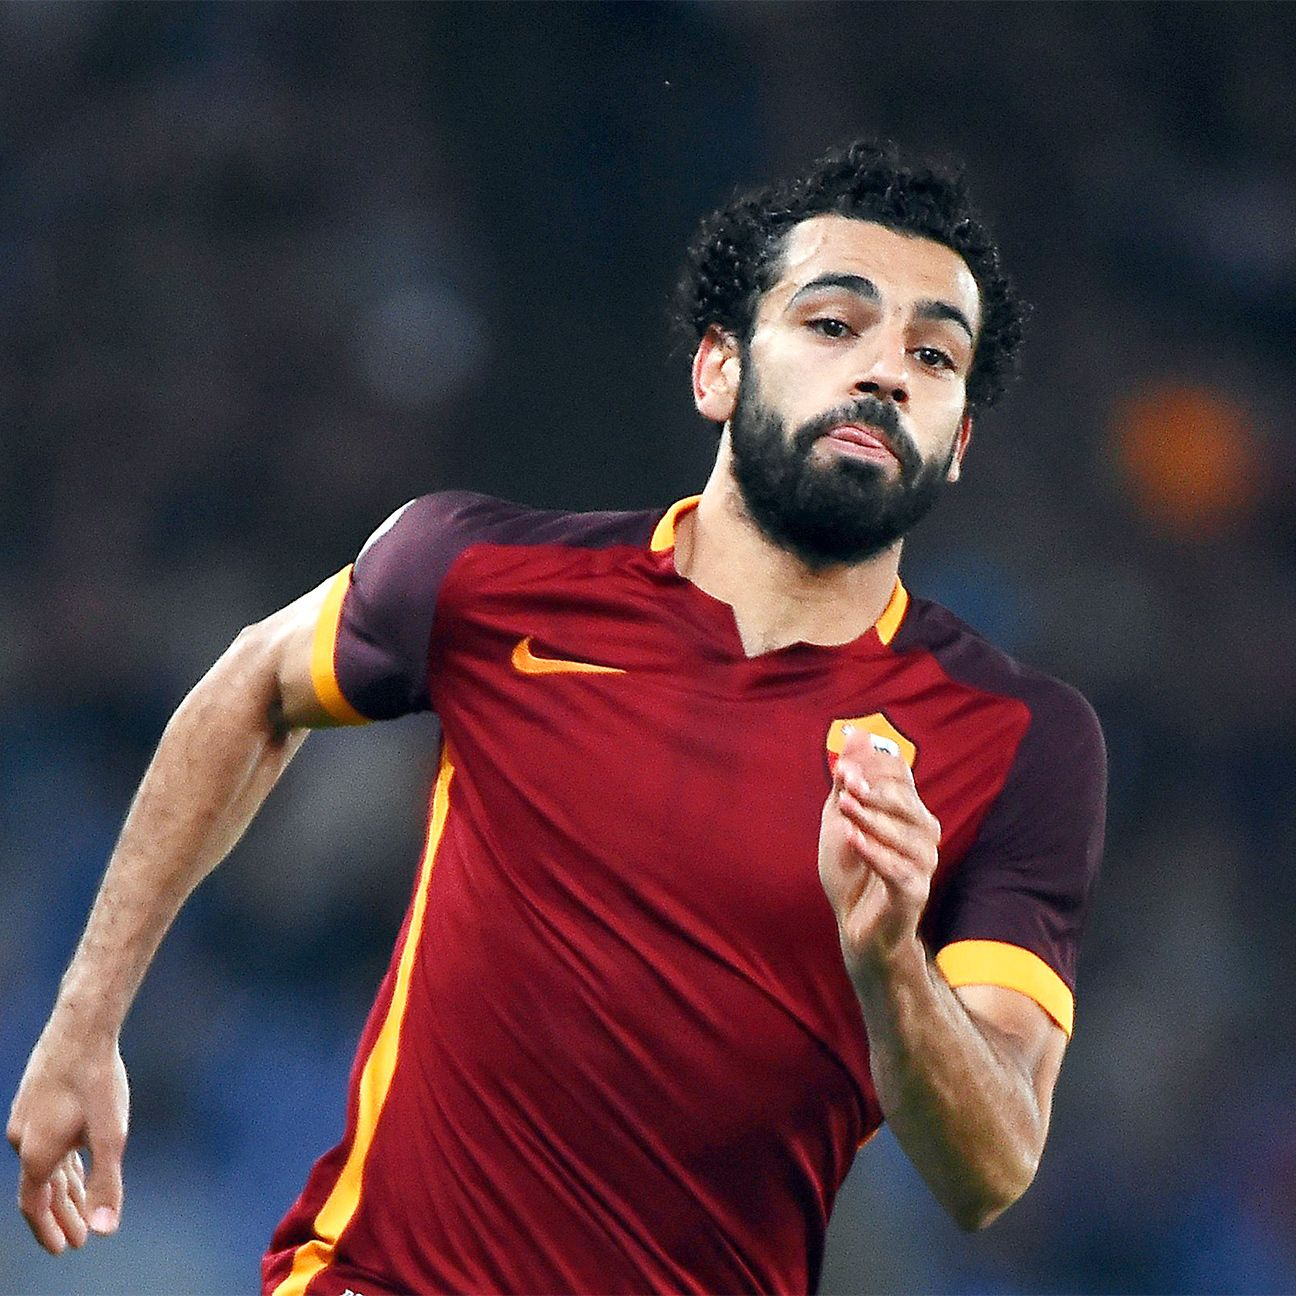 Mohamed Salah is off to a solid start in 2015-16, with four goals in Serie A.